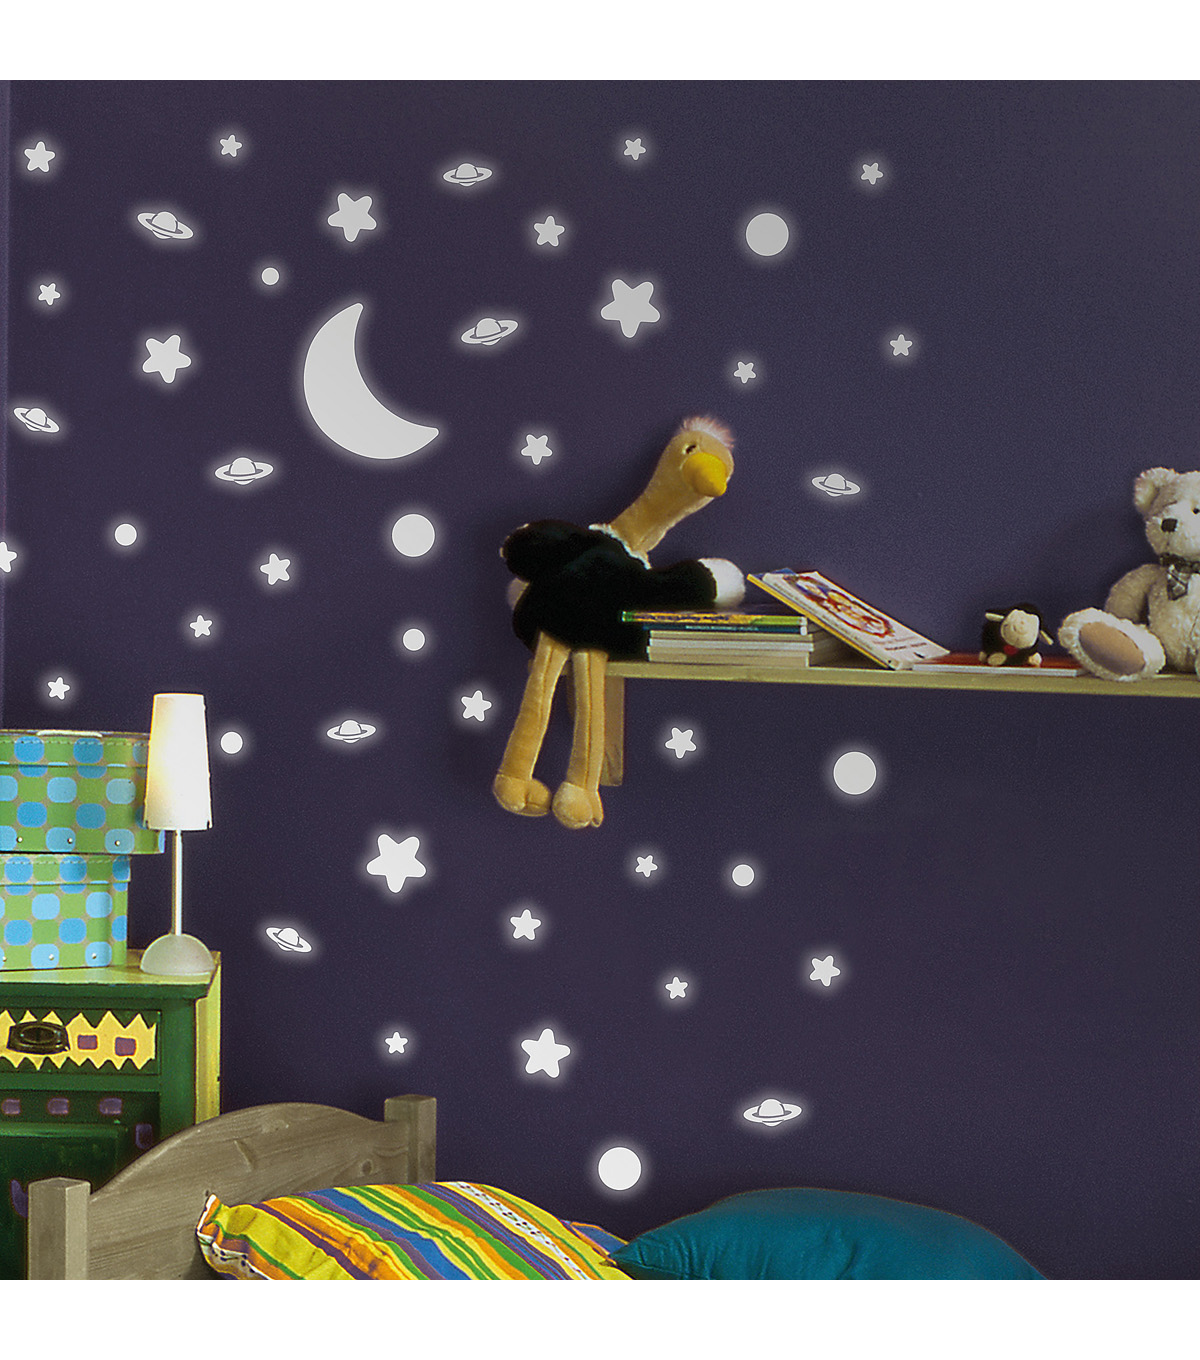 Home Decor Moon and Stars Wall Decal, 120 Piece Set